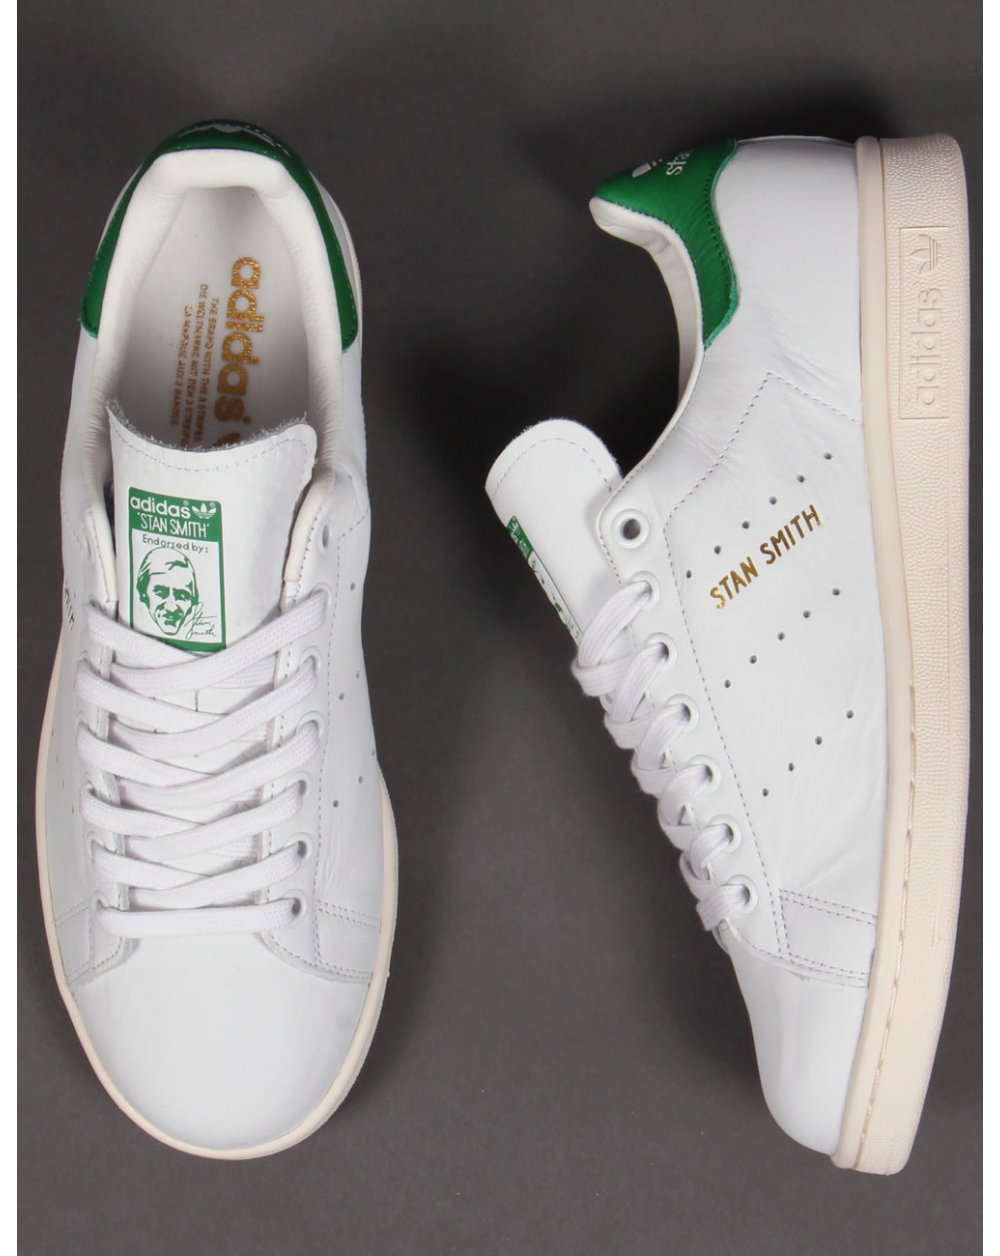 Adidas Stan Smith Trainers White/green/gold,originals ...